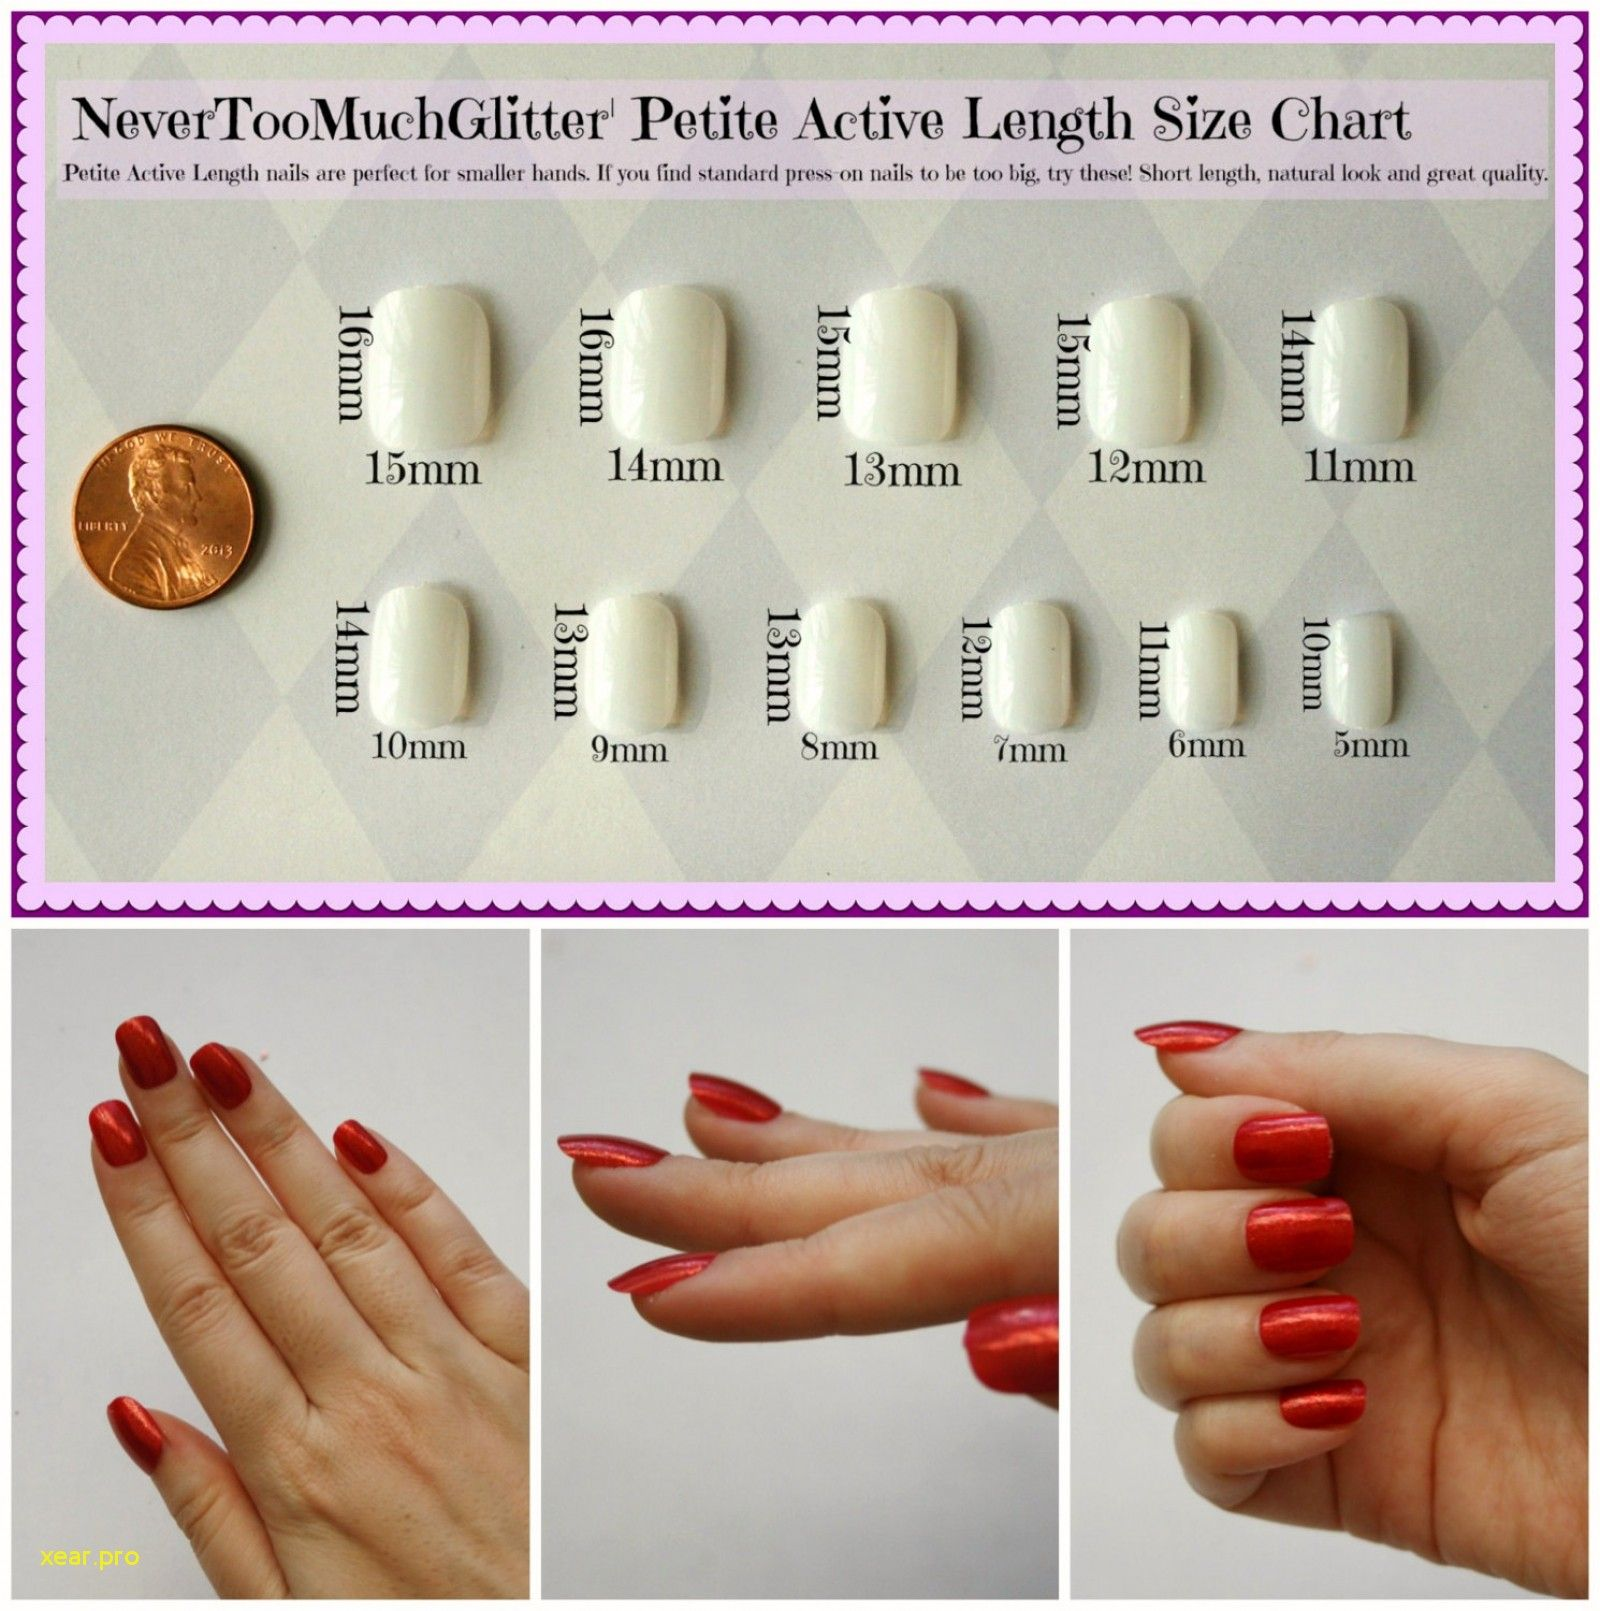 Luxury Nail Length Chart Luxury Nail Length Chart Pleasant To My Blog In This Particular Time Period I Will Demonstrat Nail Length Luxury Nails Nail Art Kit